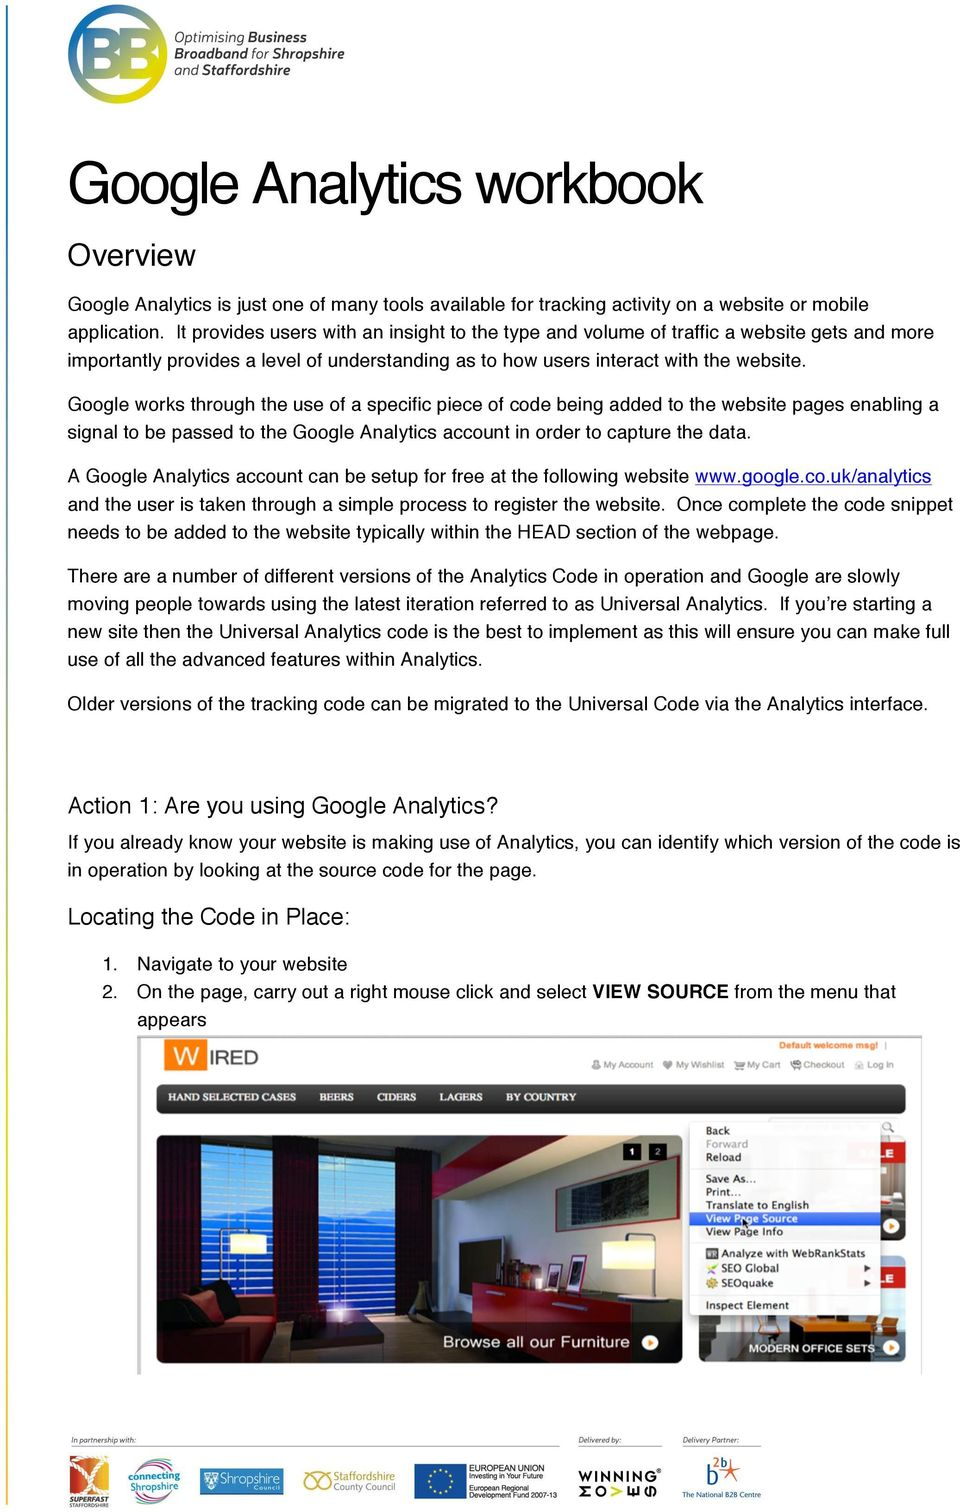 Google works through the use of a specific piece of code being added to the website pages enabling a signal to be passed to the Google Analytics account in order to capture the data.